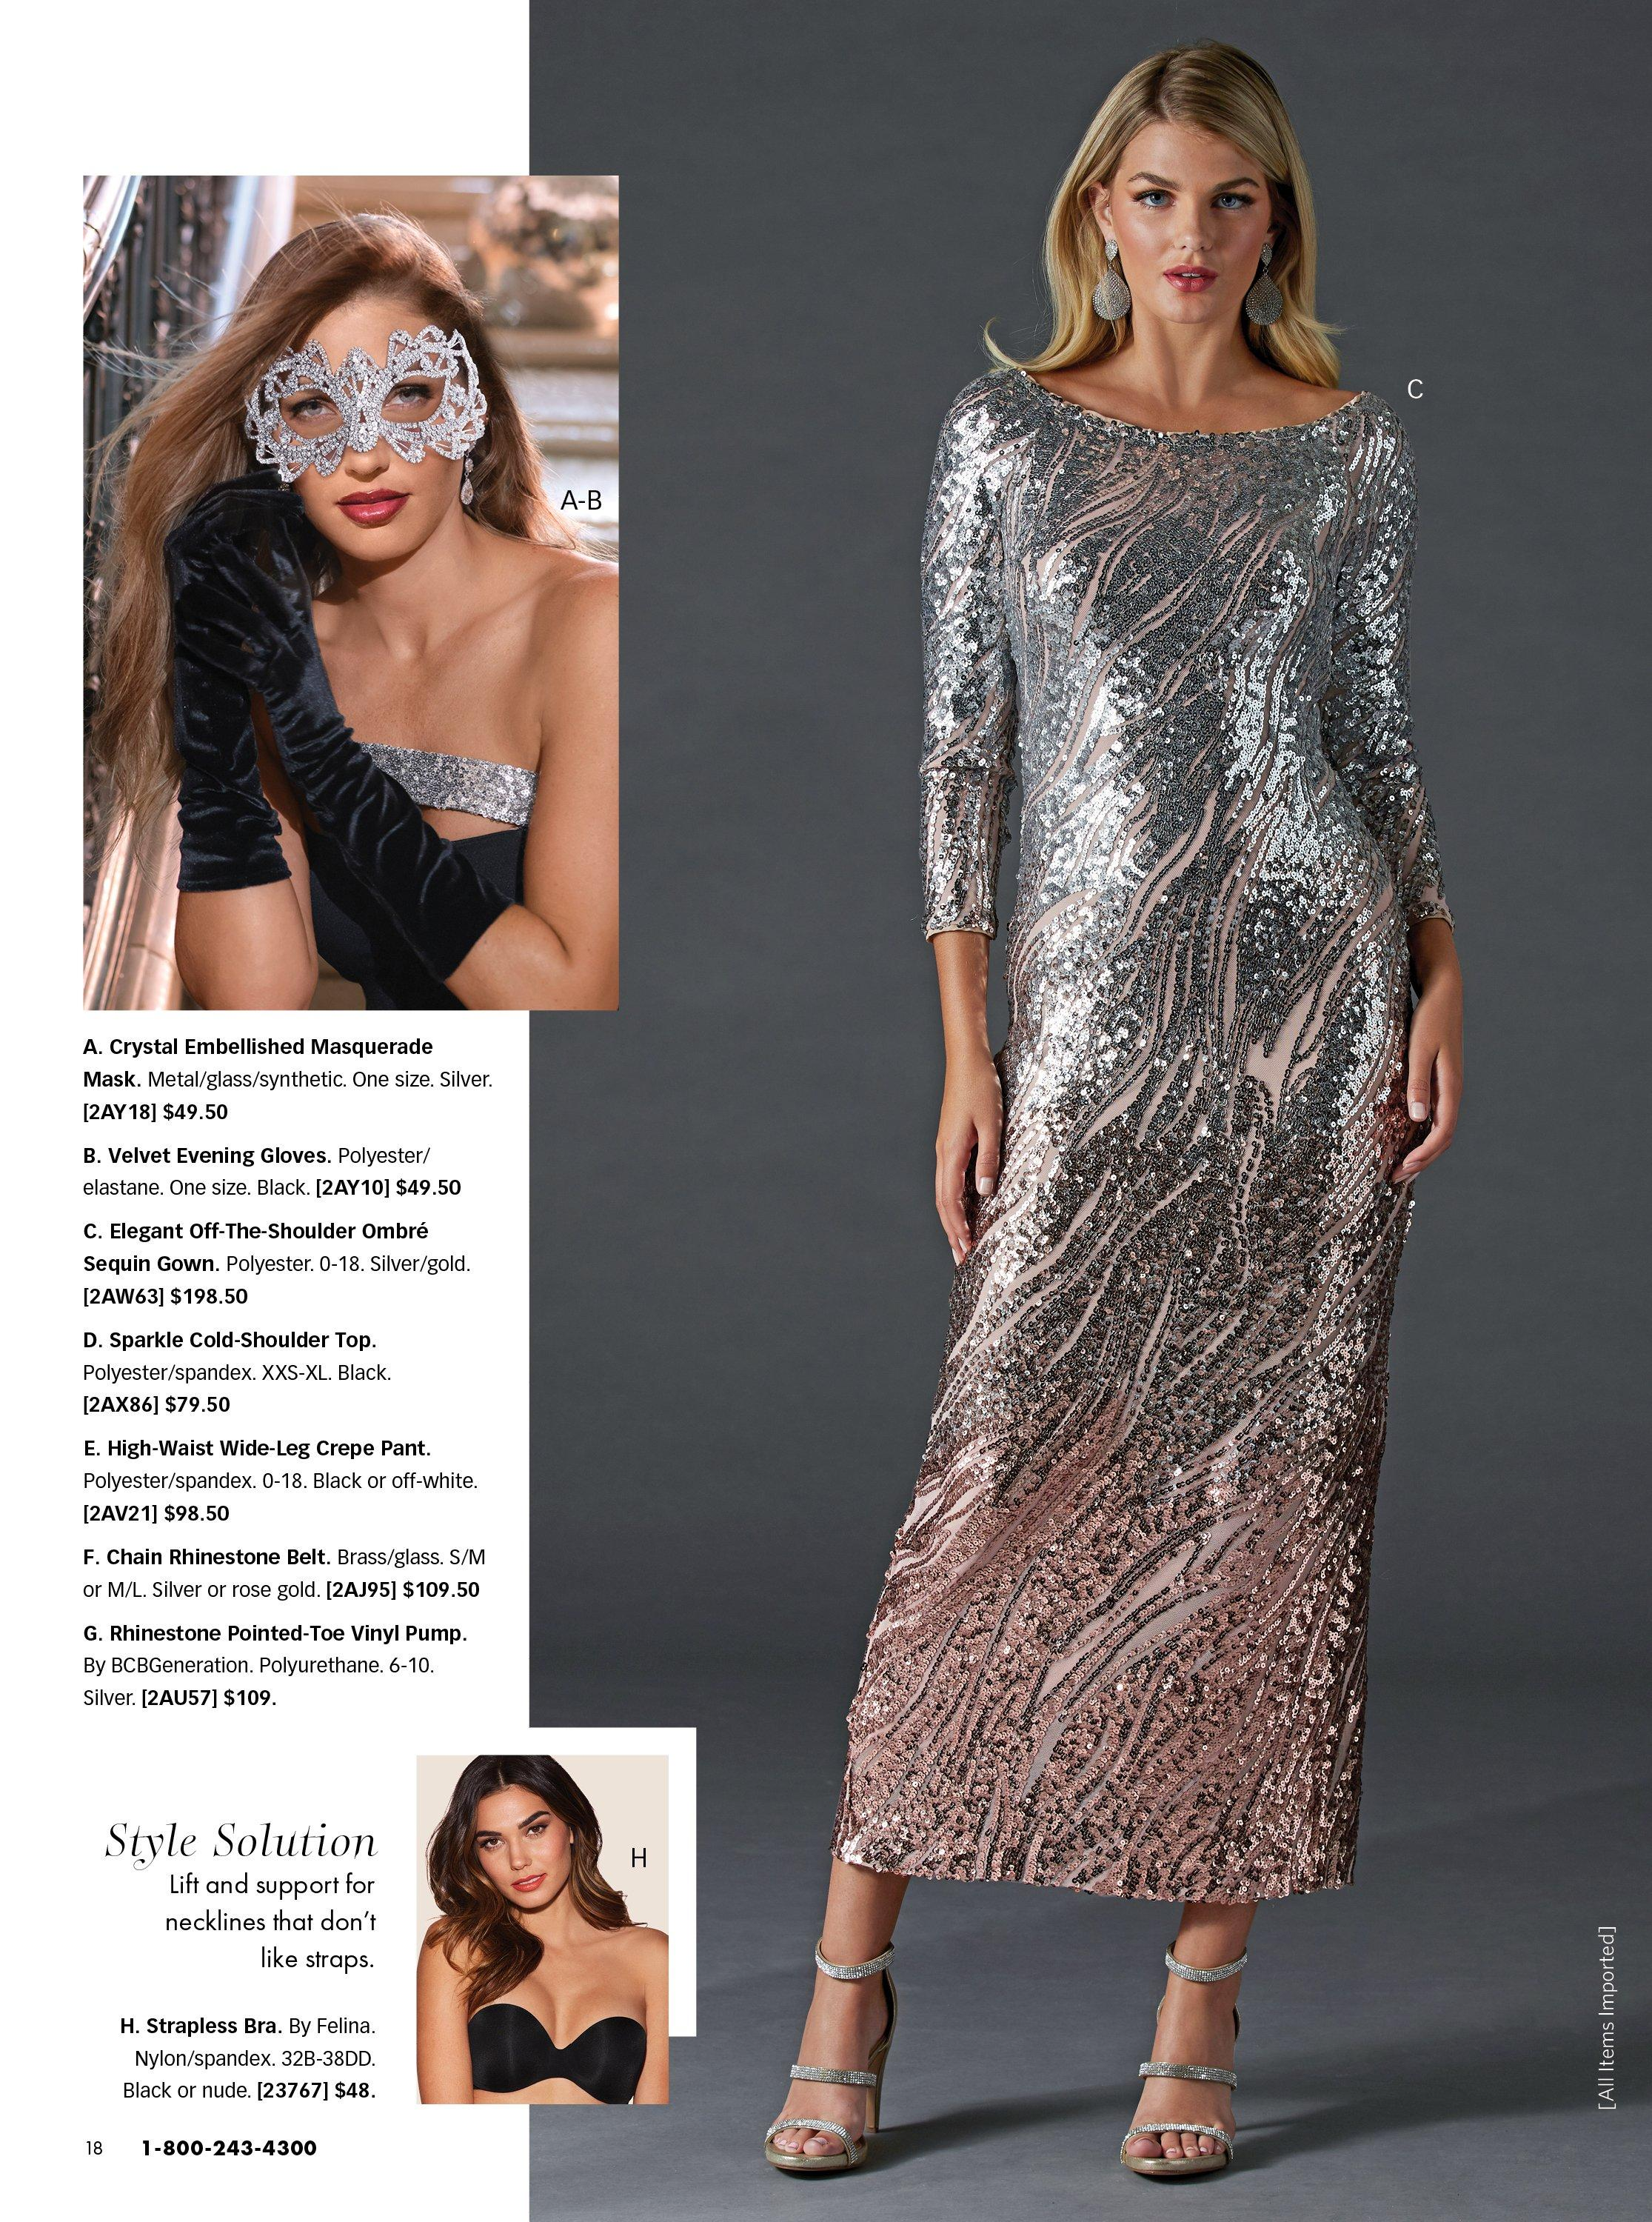 left model wearing a rhinestone masquerade mask and black velvet gloves. right model wearing an off-the-shoulder sequin embellished silver gown.